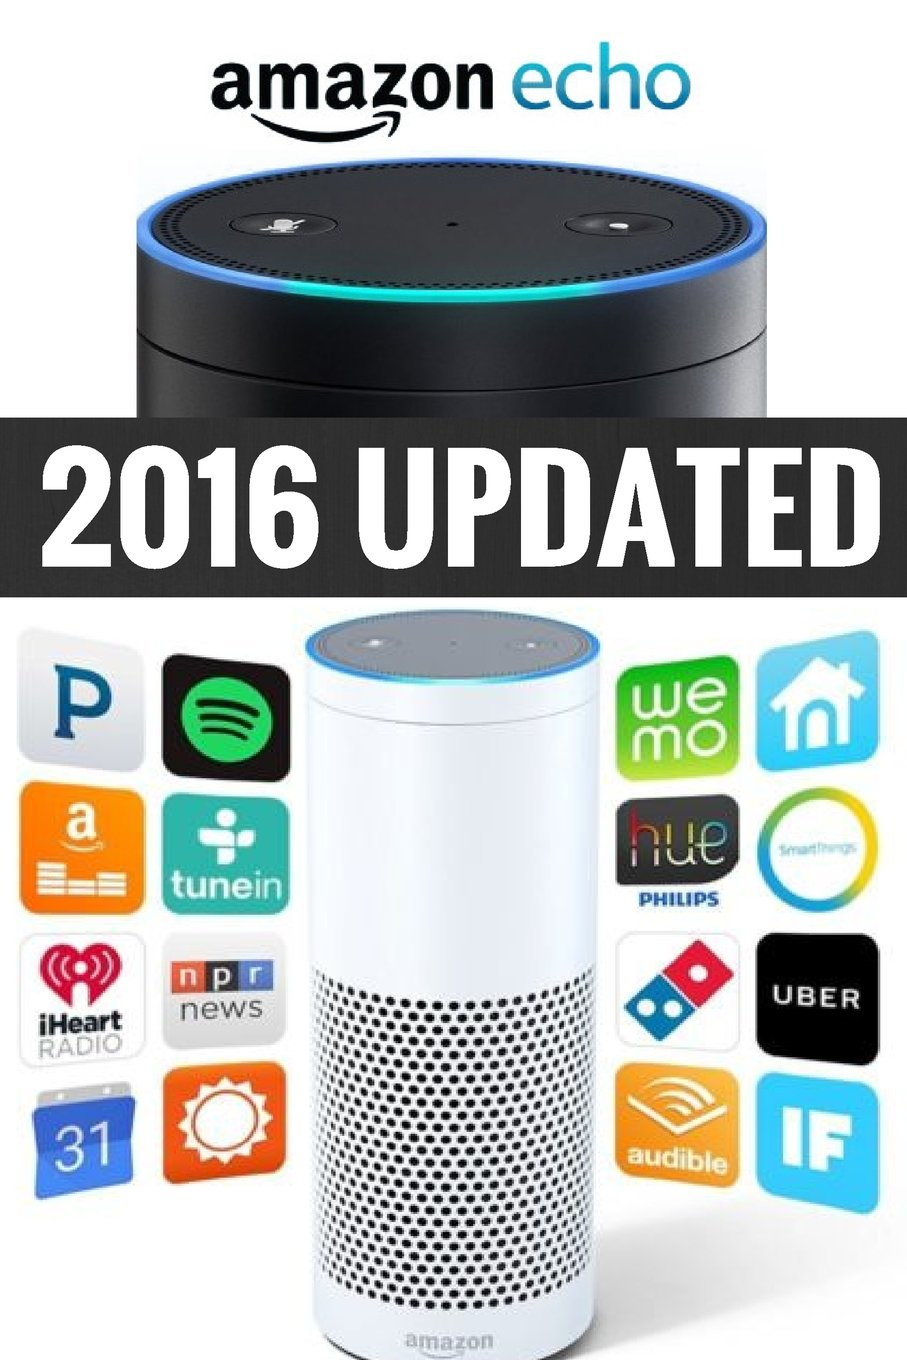 Read Online Amazon Echo: Amazon Echo Advanced User Guide (2016 Updated) (Echo, Amazon Echo User Manual, Amazon Alexa, Amazon Echo Dot, Amazon Echo ebook) ebook